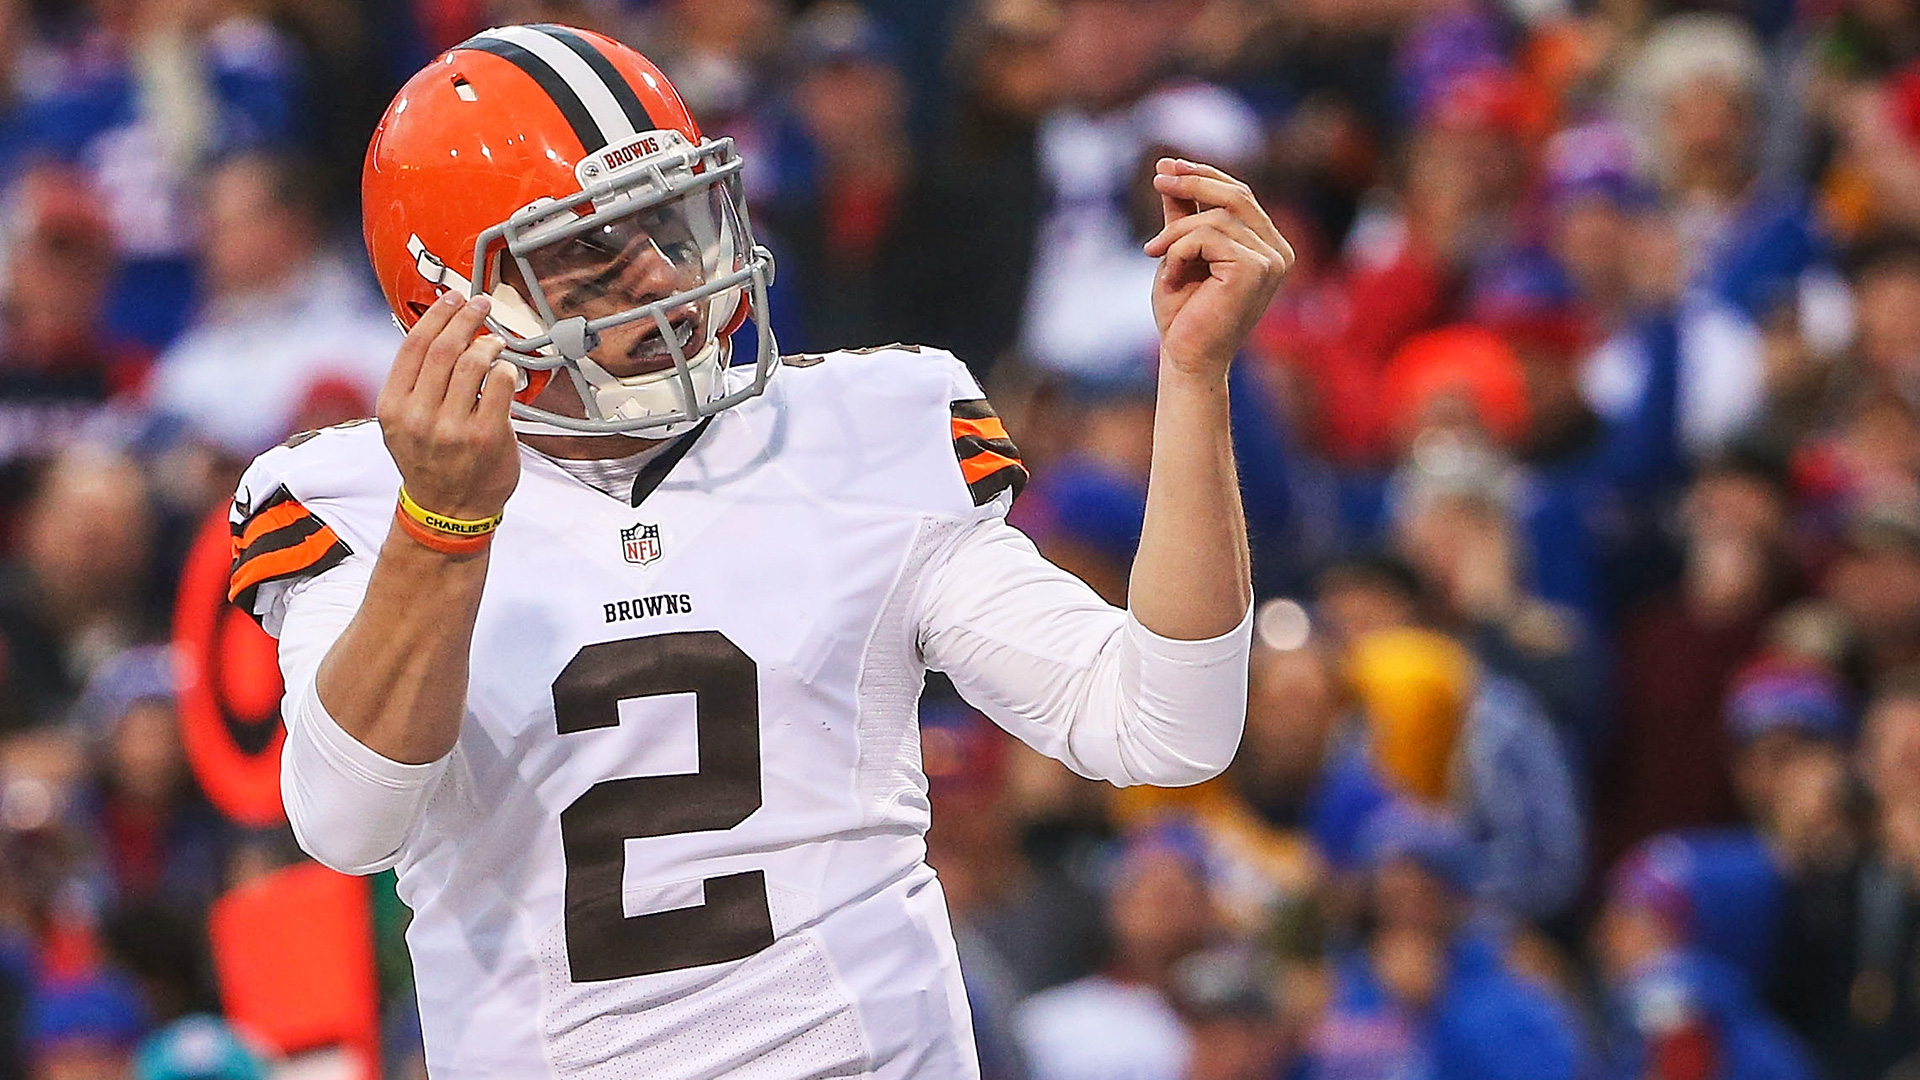 Manziel forcing Hamilton Tiger-Cats to sign, trade or release him, report says